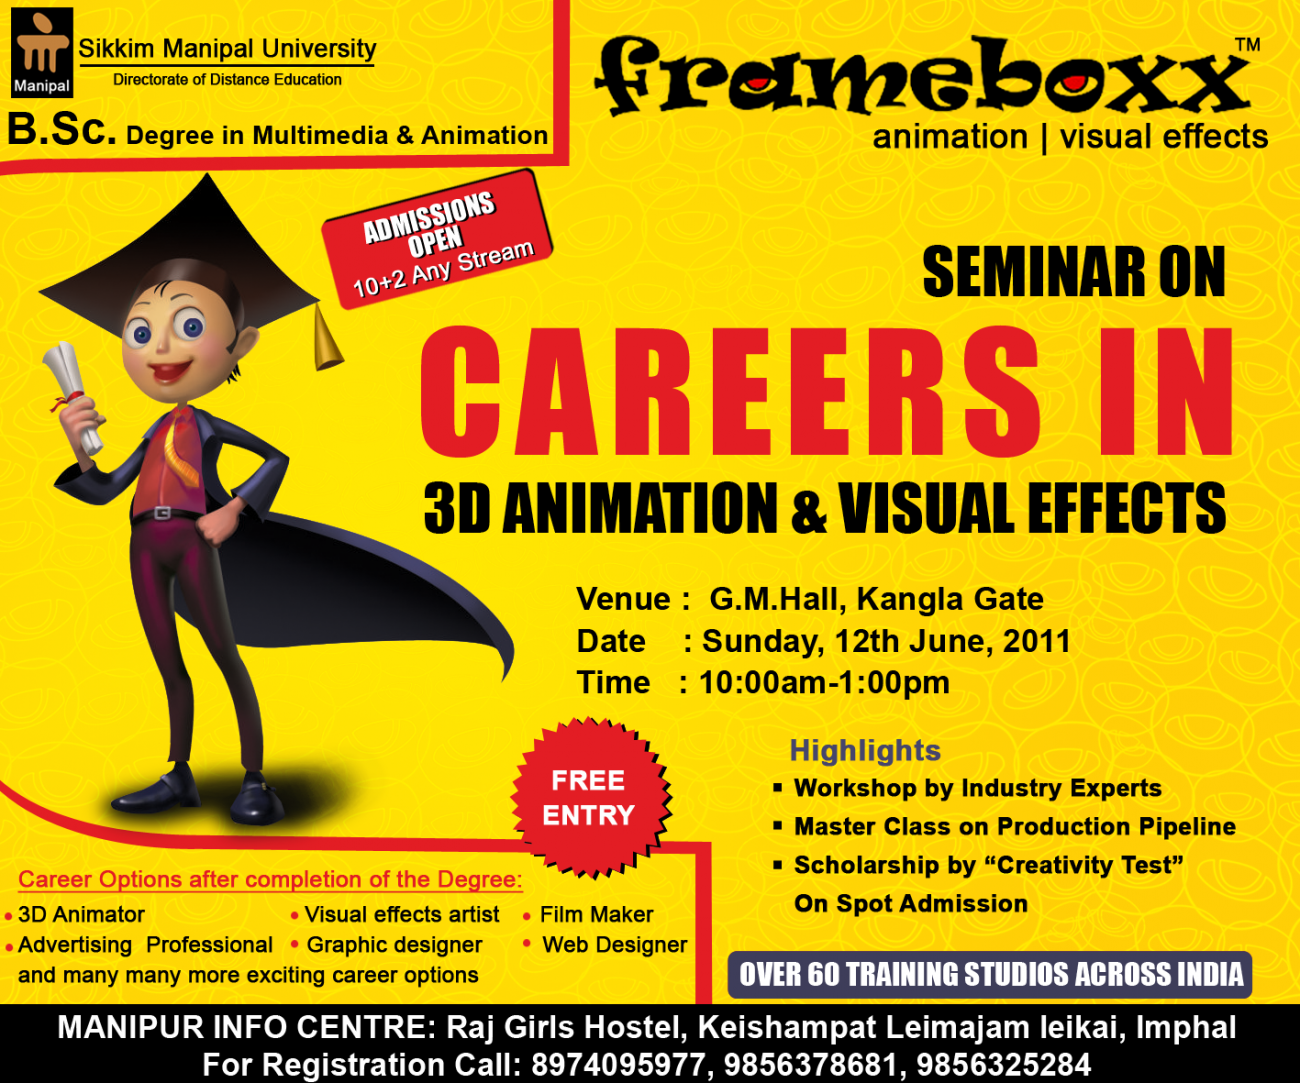 Frameboxx seminar - Careers in Animation and Visual Effects - Sunday, June 12. Click image to enlarge.